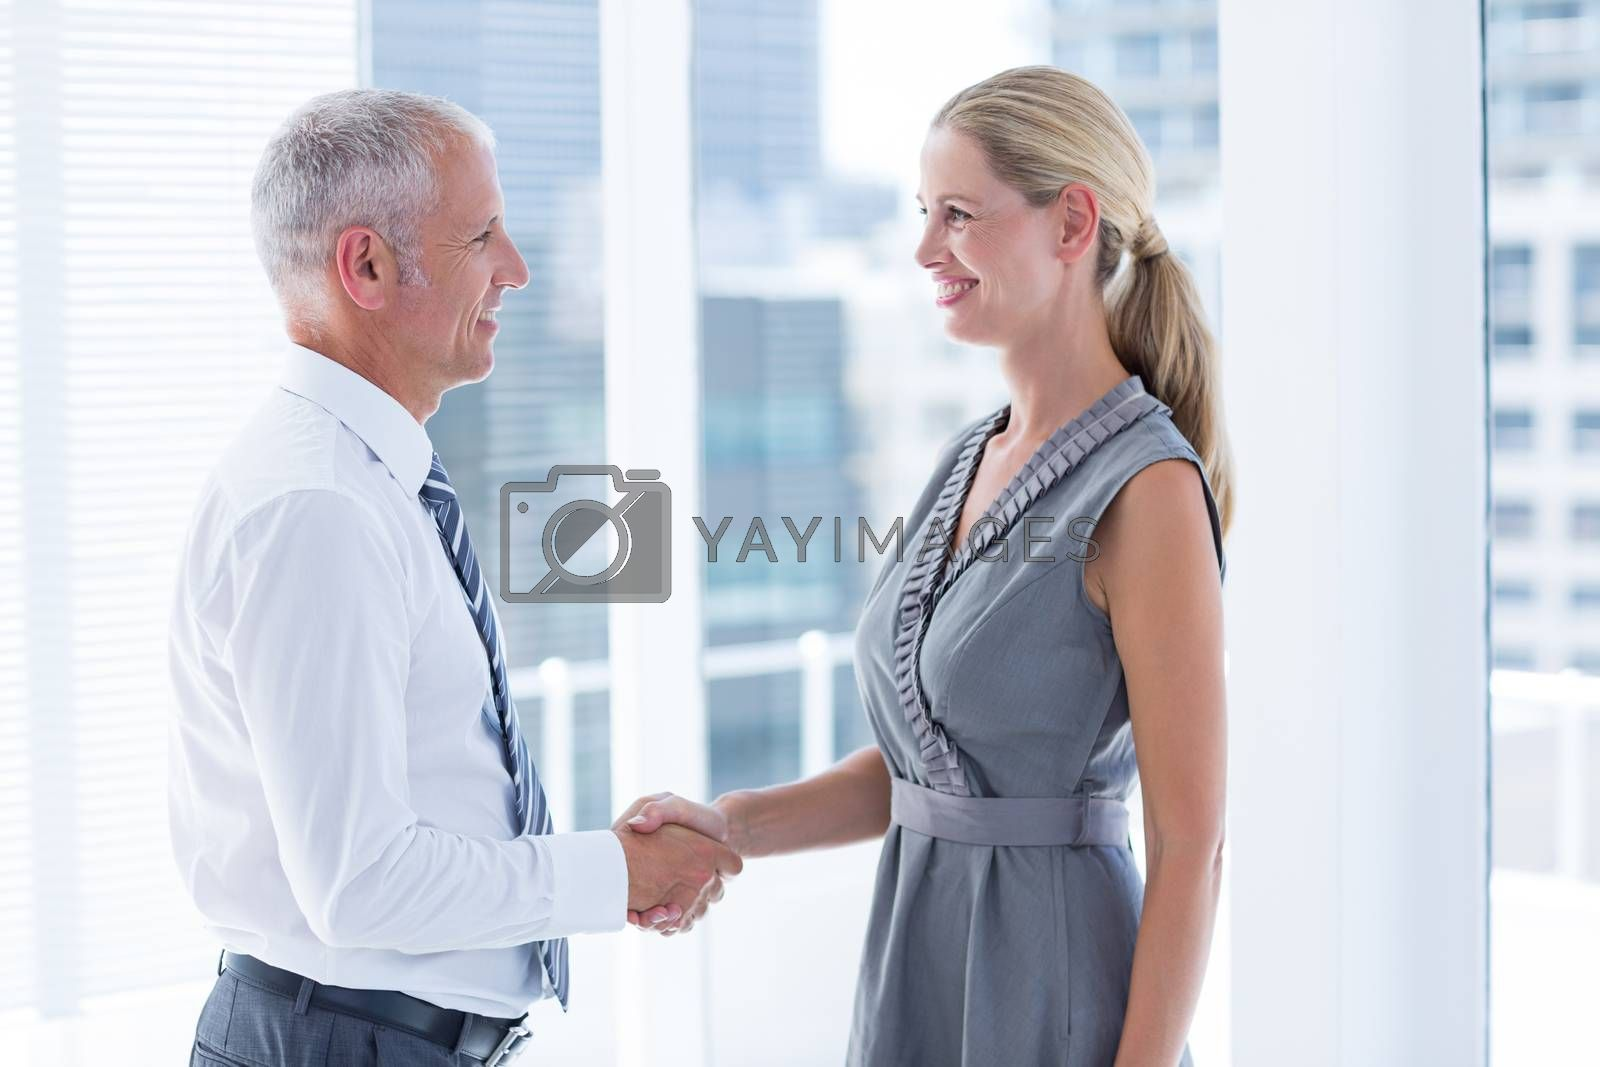 Royalty free image of Two smiling business people shaking hands by Wavebreakmedia